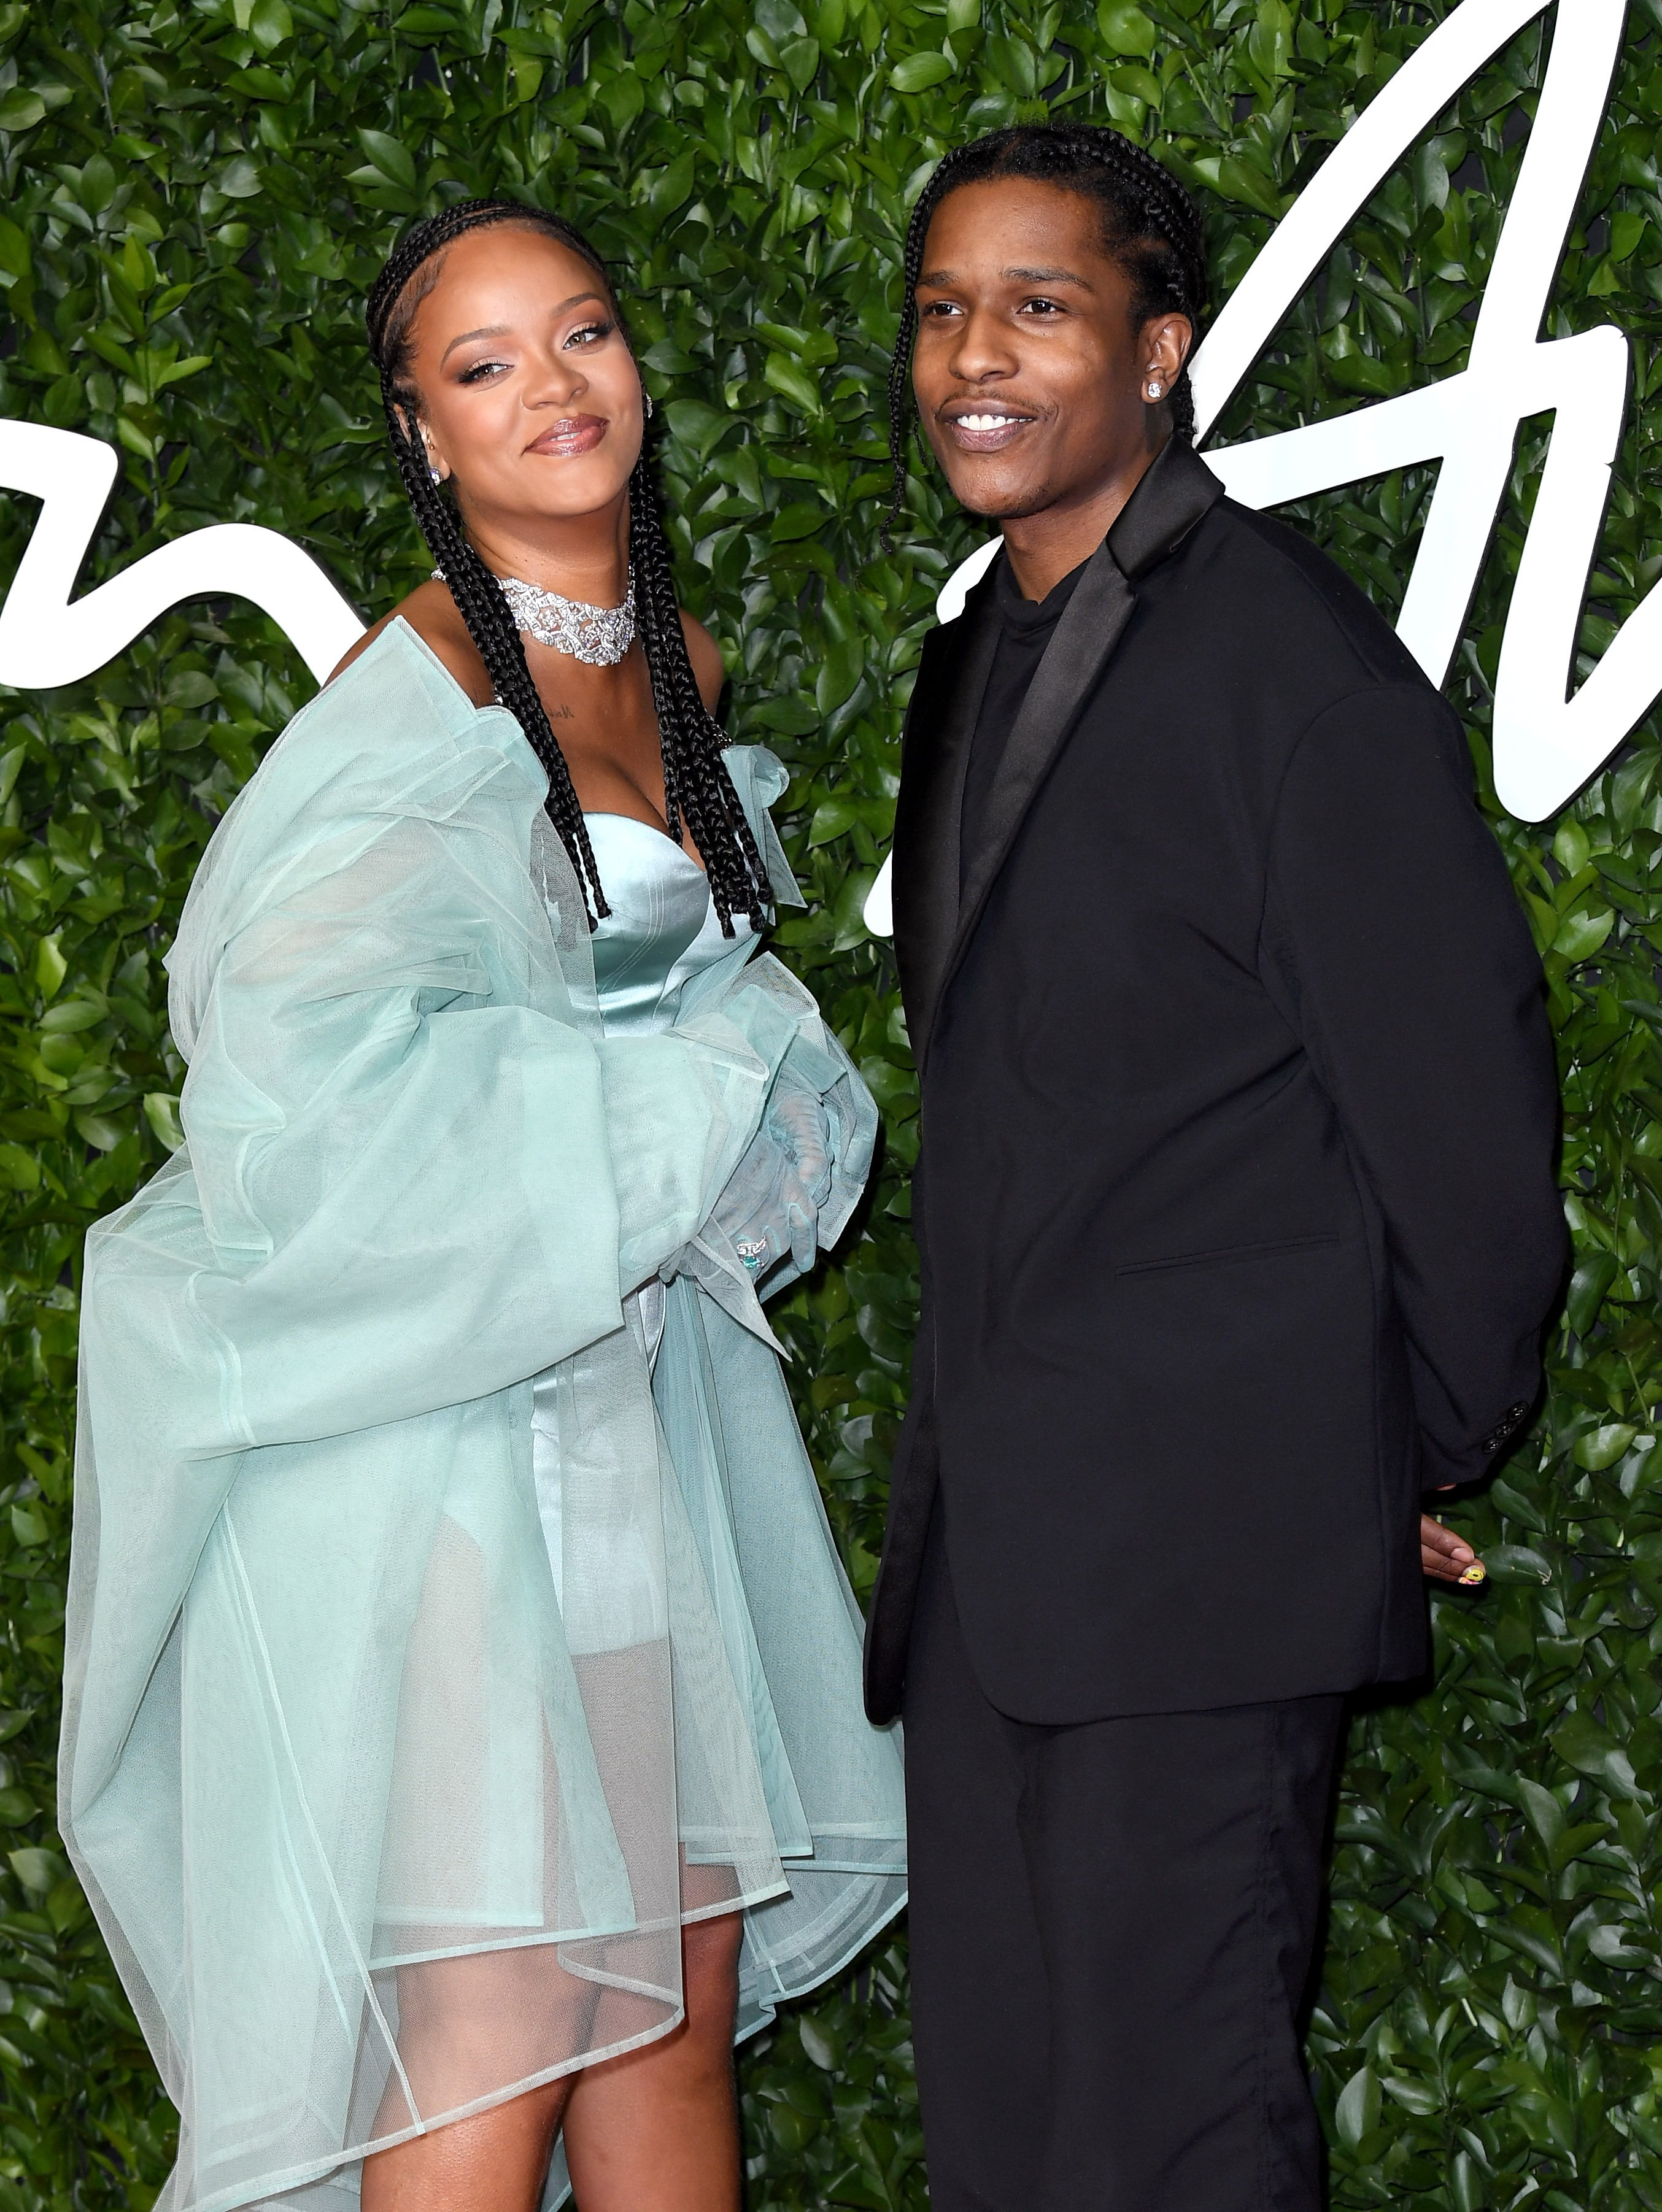 Rihanna and A$AP Rocky pose at The Fashion Awards 2019 at the Royal Albert Hall on December 02, 2019 in London, England. | Source: Getty Images